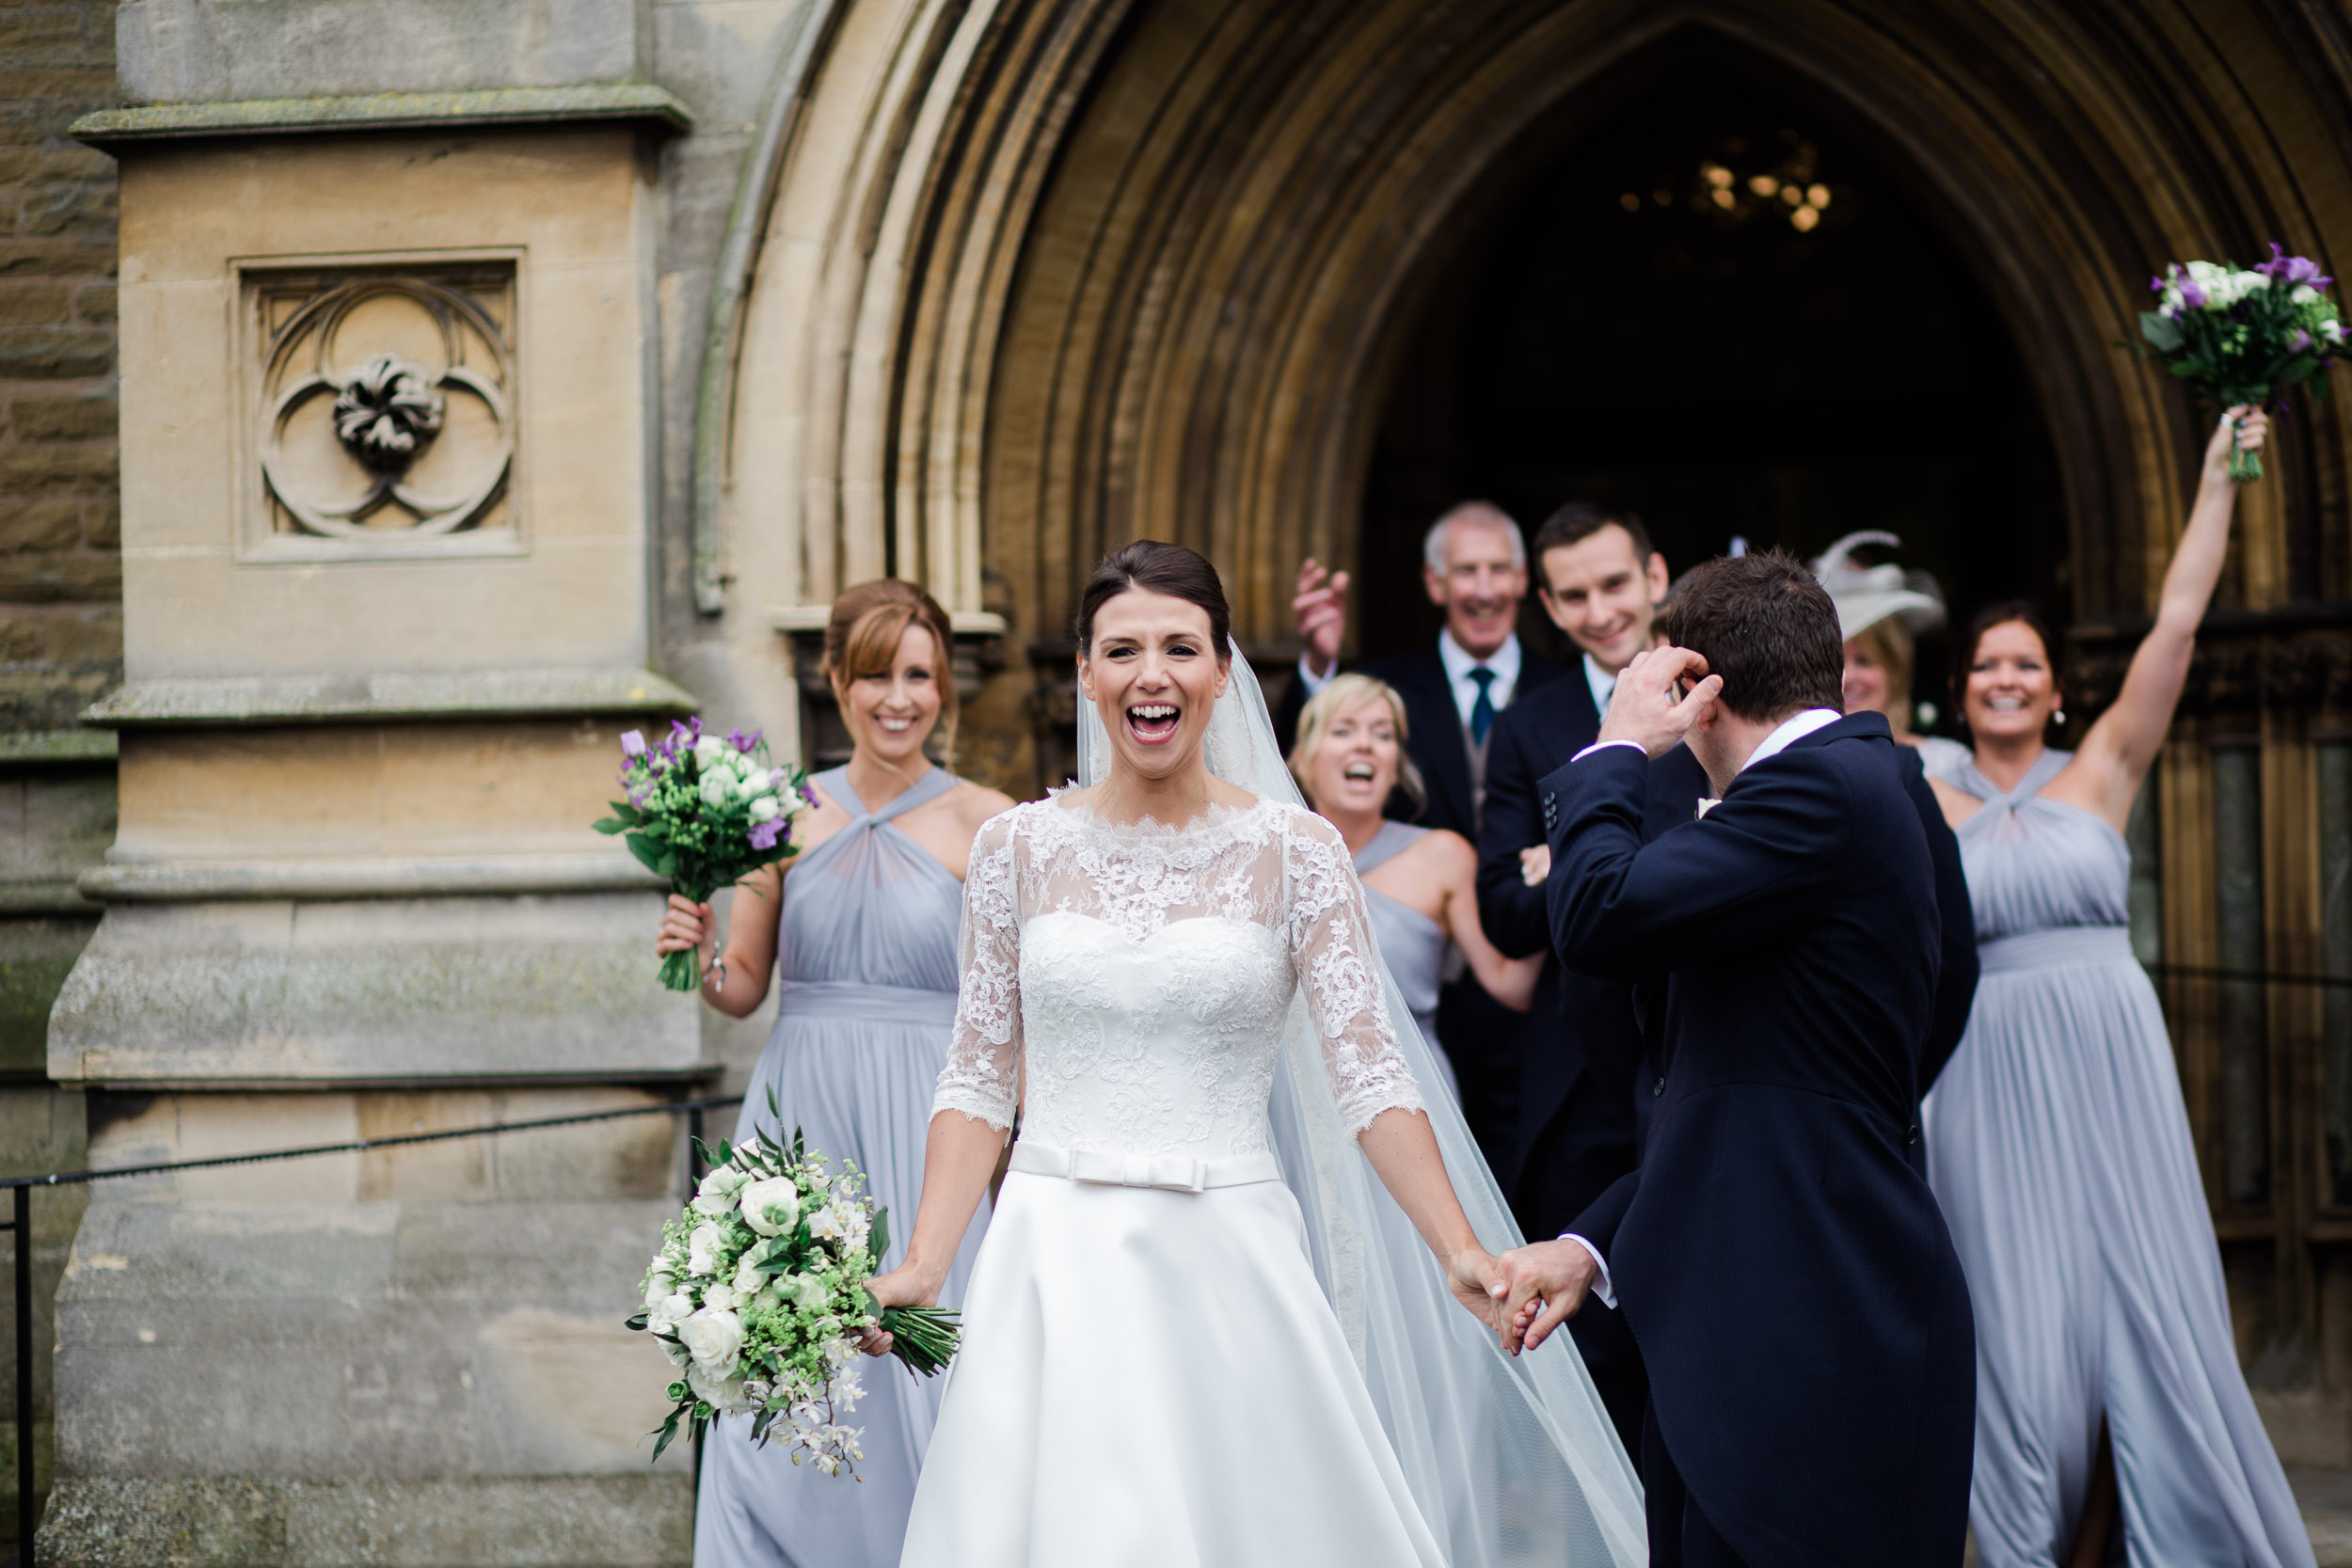 Bride and Groom Celebrating marriage outside church doors st maries